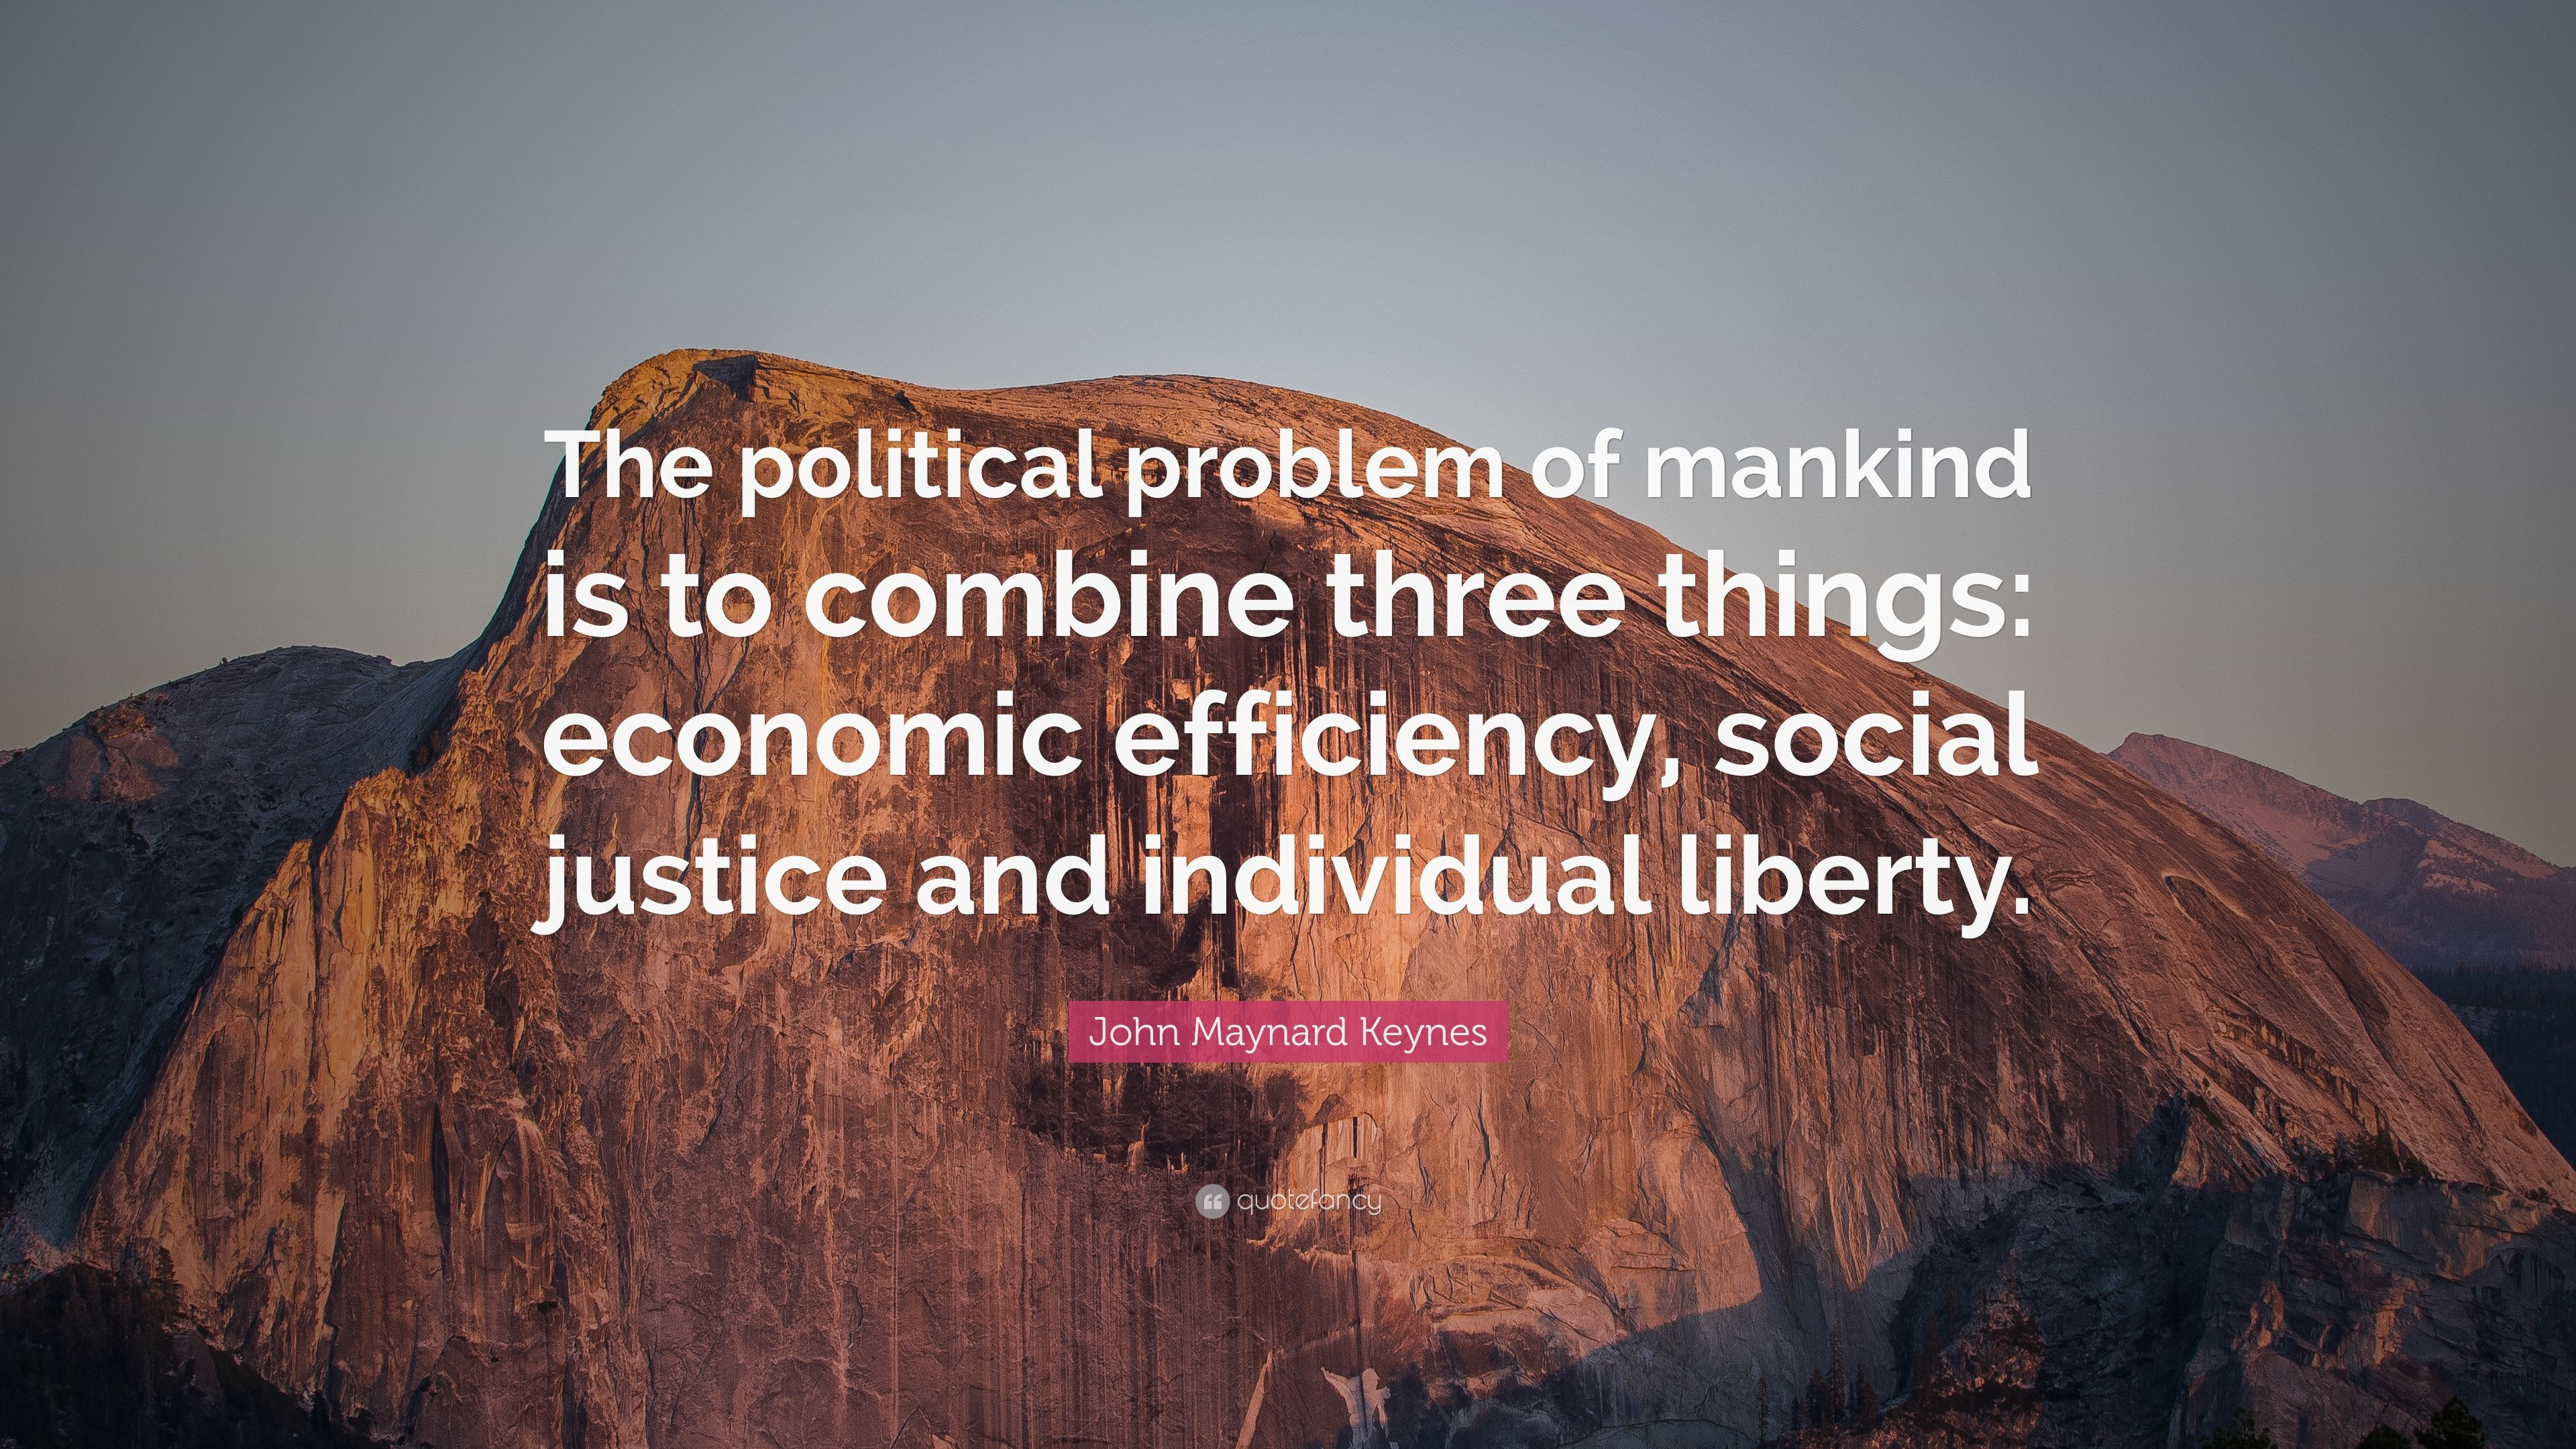 problems on mankind